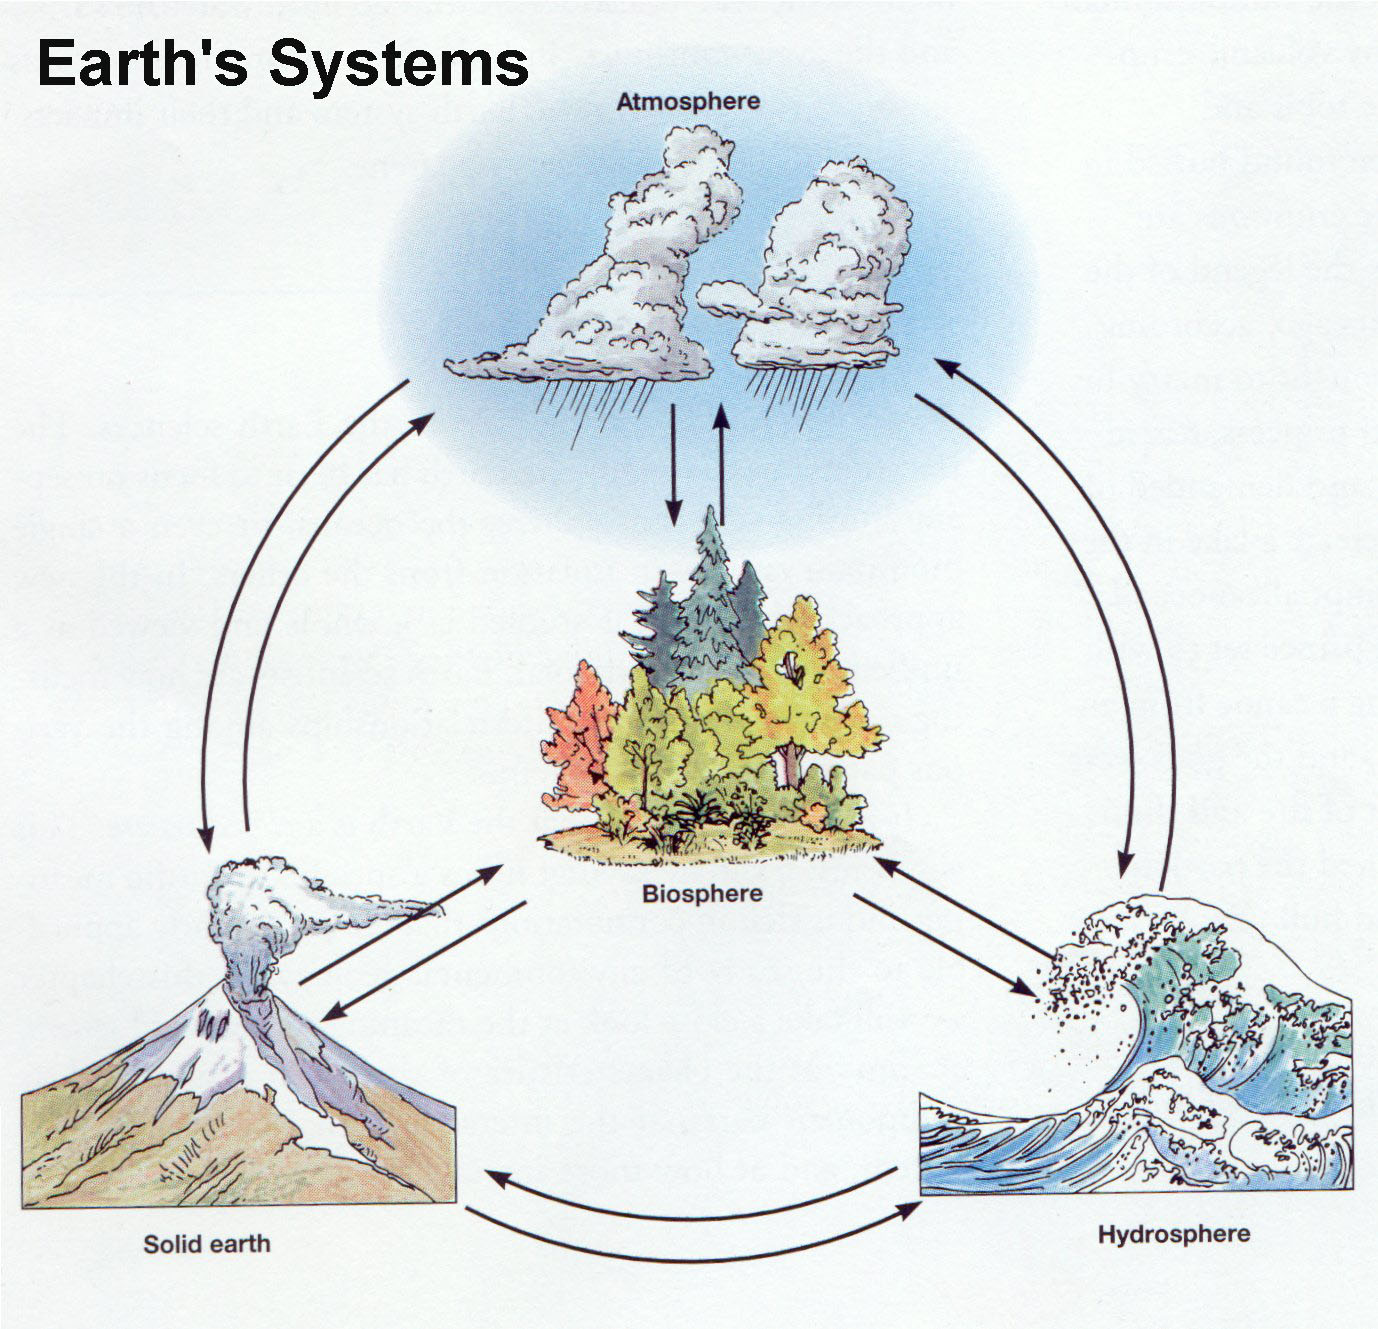 Earth is composed of many systems that interact and humans interact with all of  them.